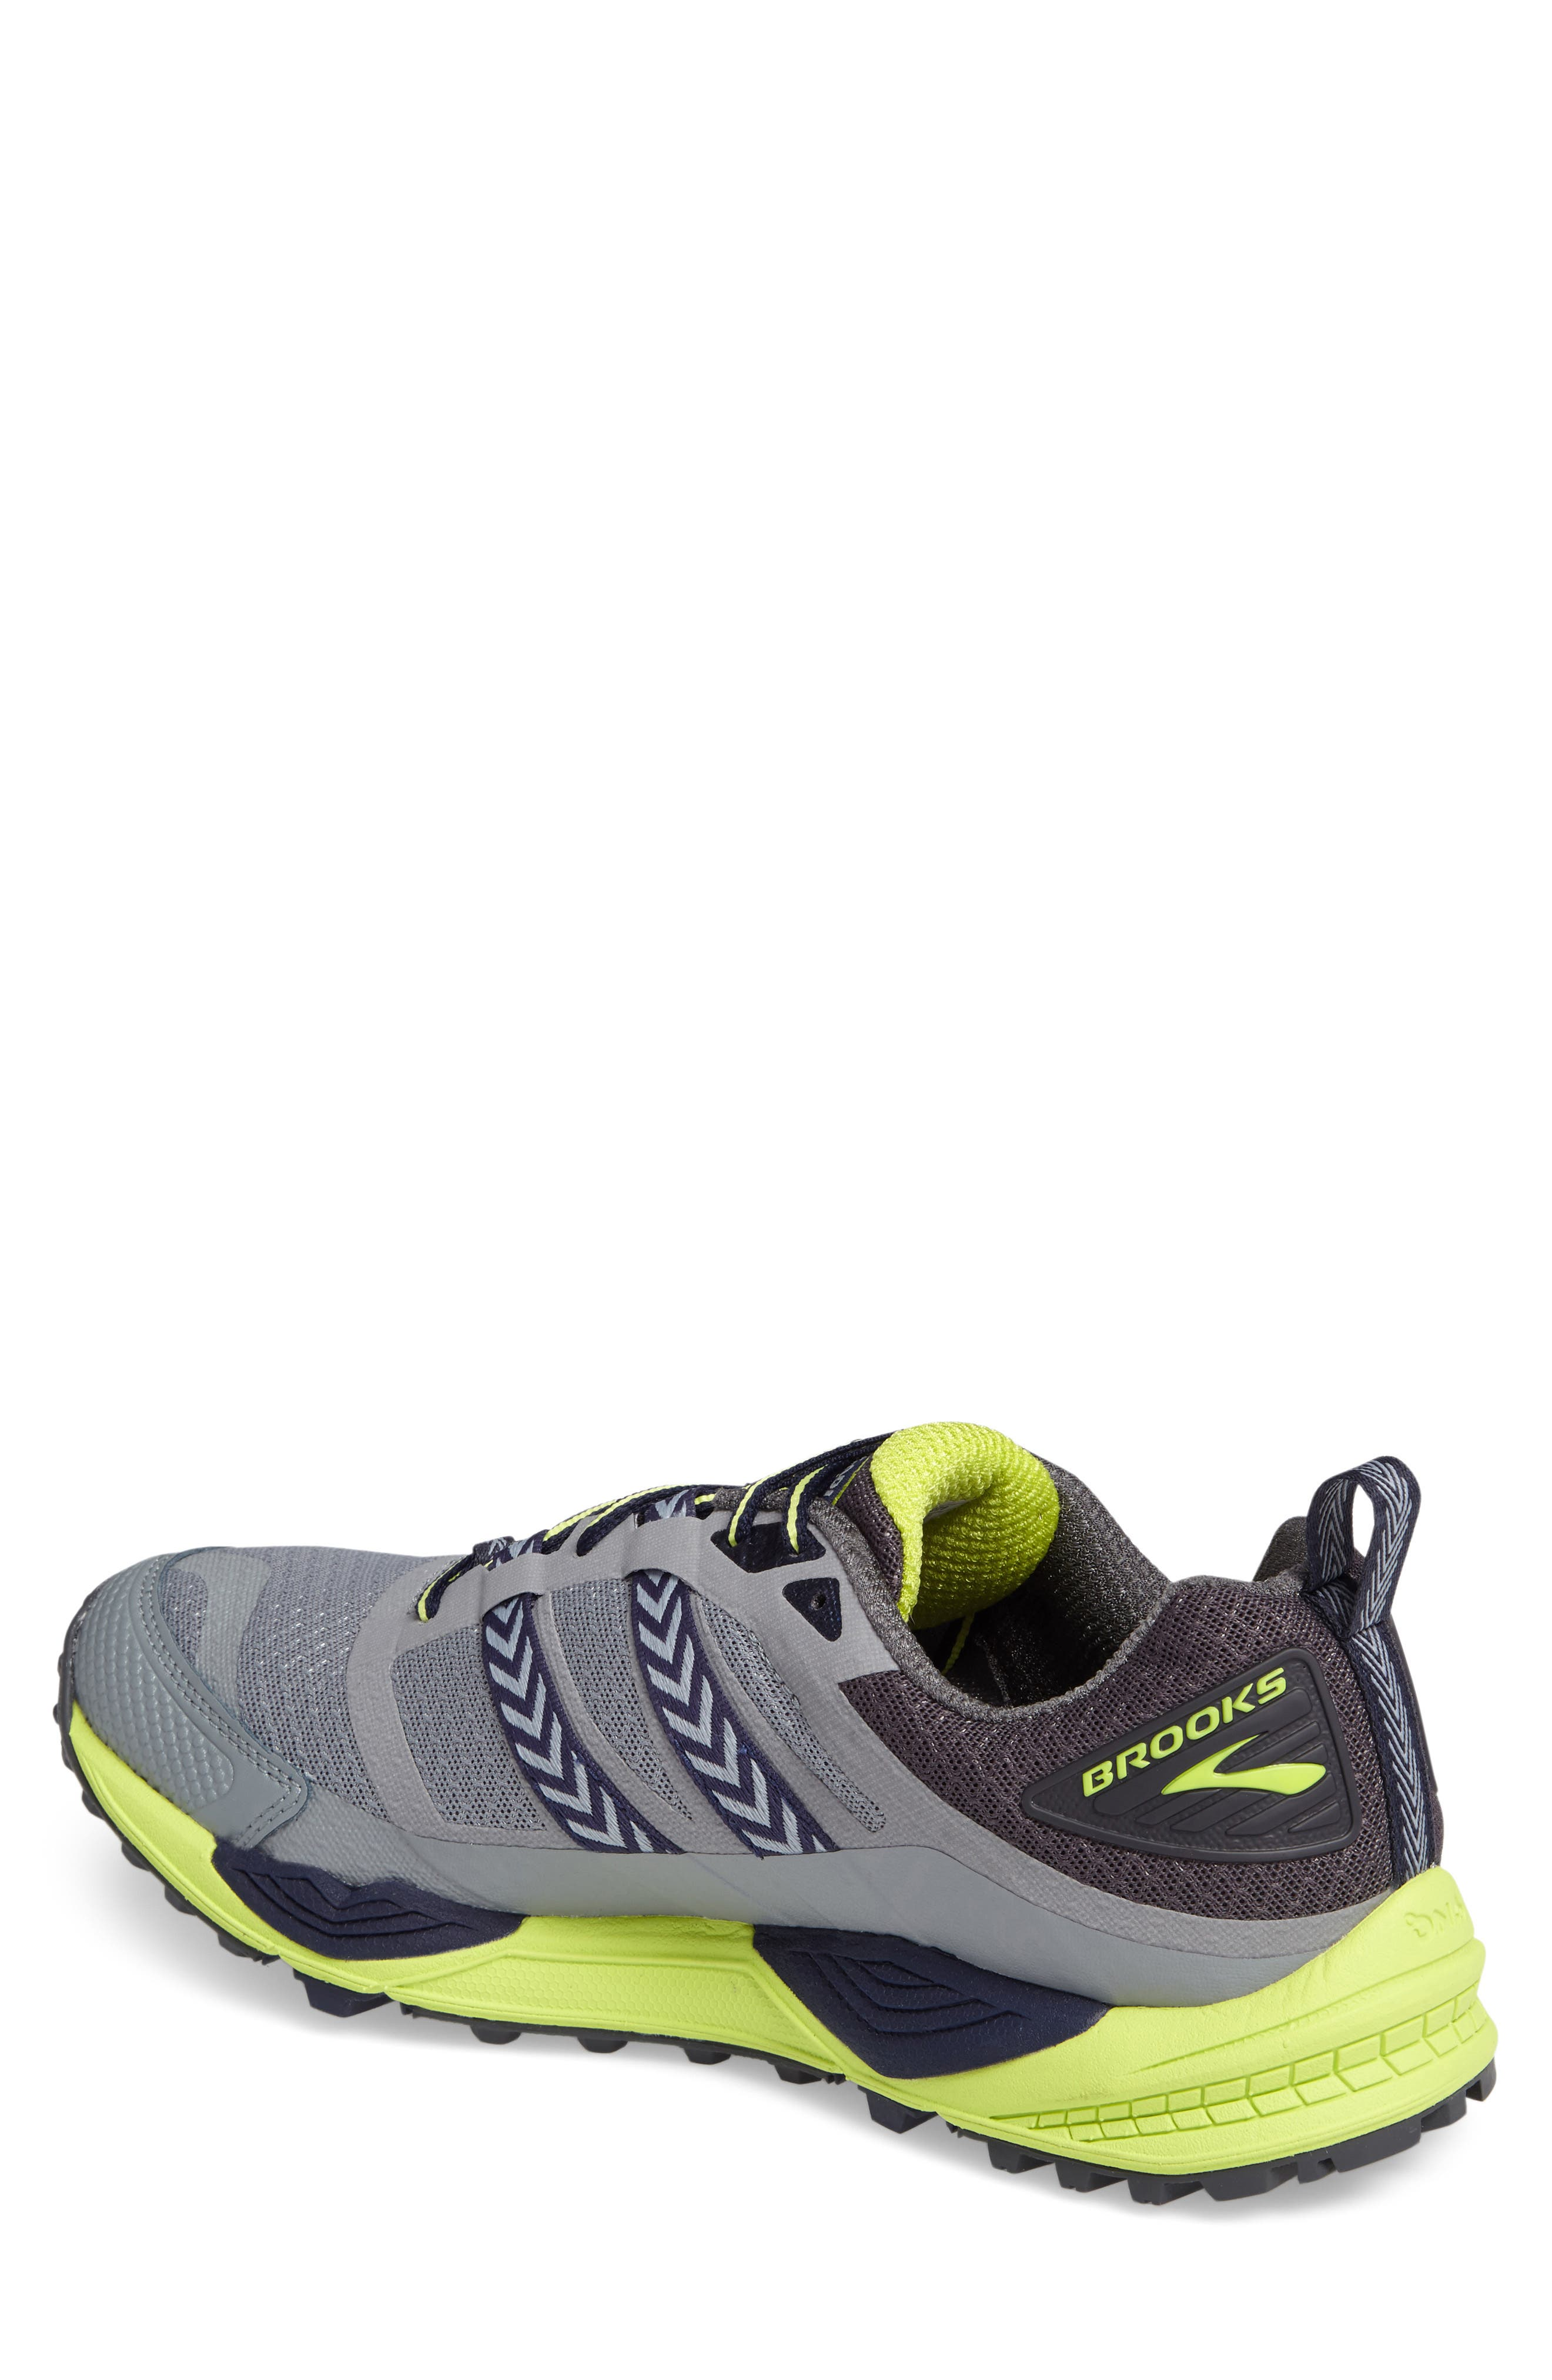 Cascadia 12 Trail Running Shoe,                             Alternate thumbnail 2, color,                             Grey/ Anthracite/ Lime Punch